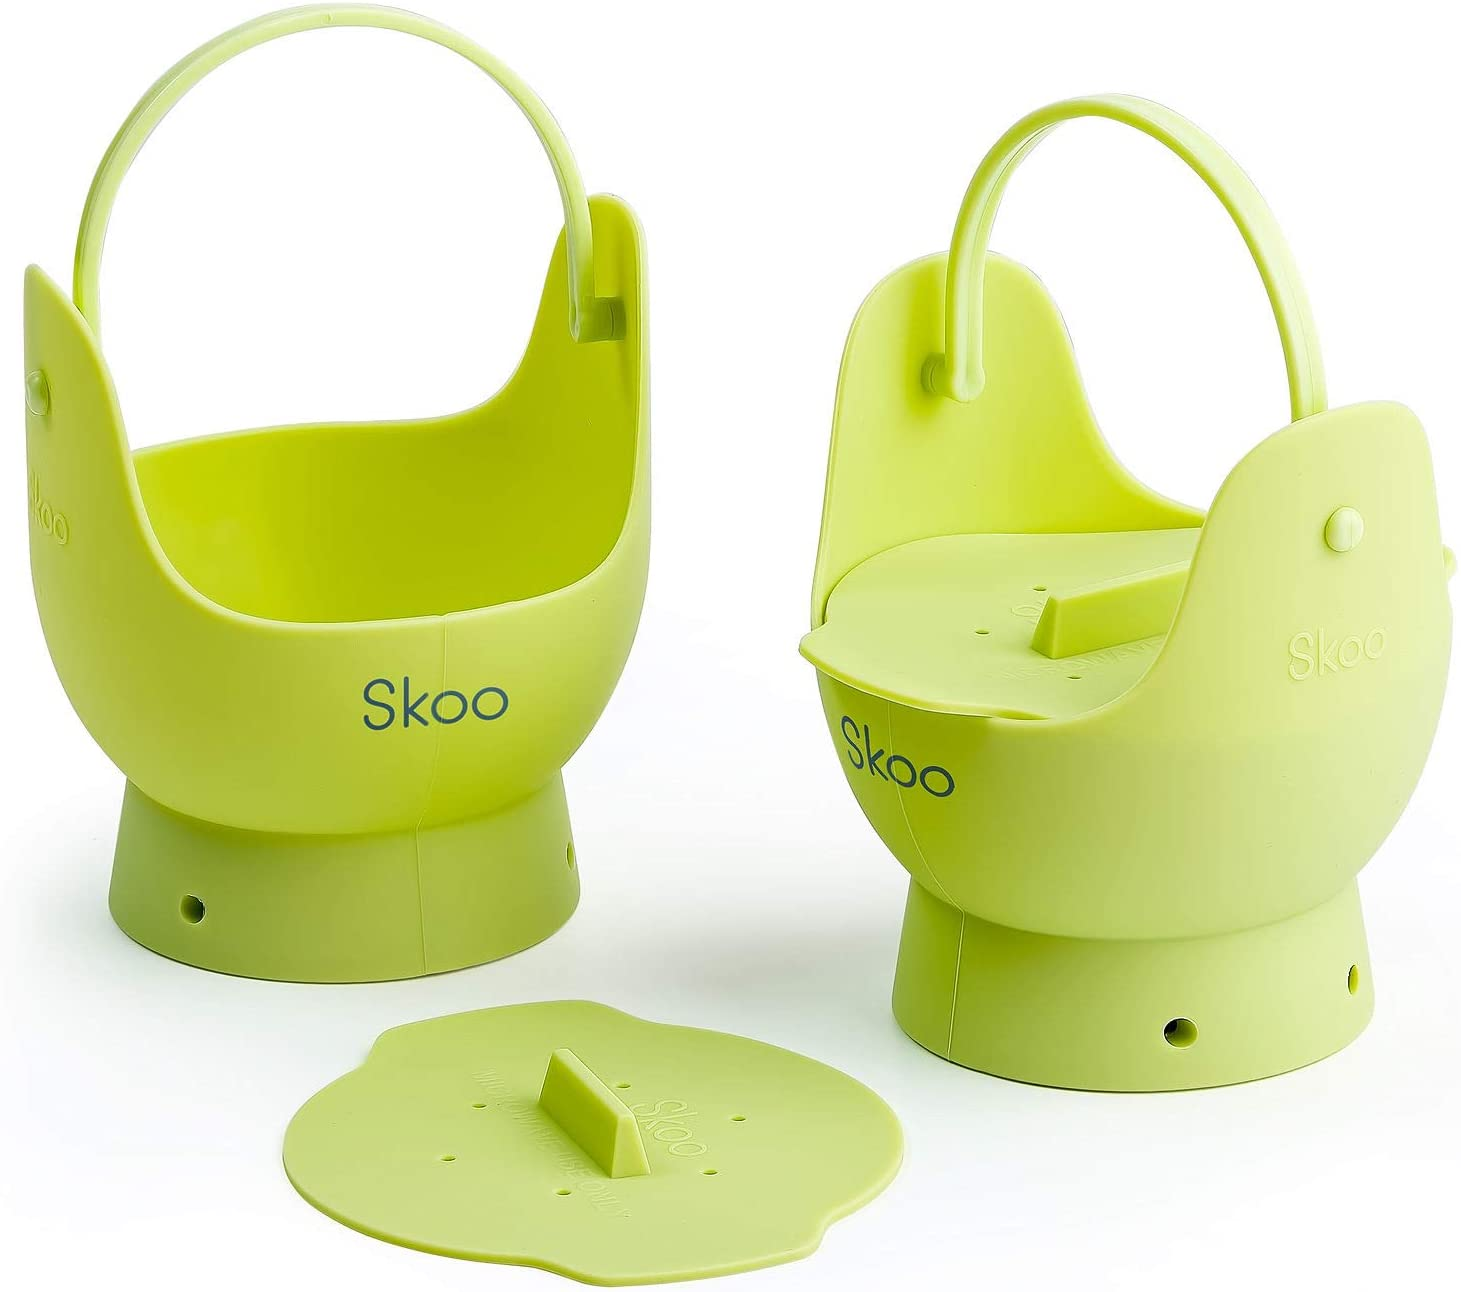 Egg Poacher - Skoo Silicone Egg Poaching Cups + Lids + Bonus eBook - Egg Cooker Set - Perfect Poached Egg Maker - For Stove Top, Microwave and Instant Pot - Pack of 2 - Green